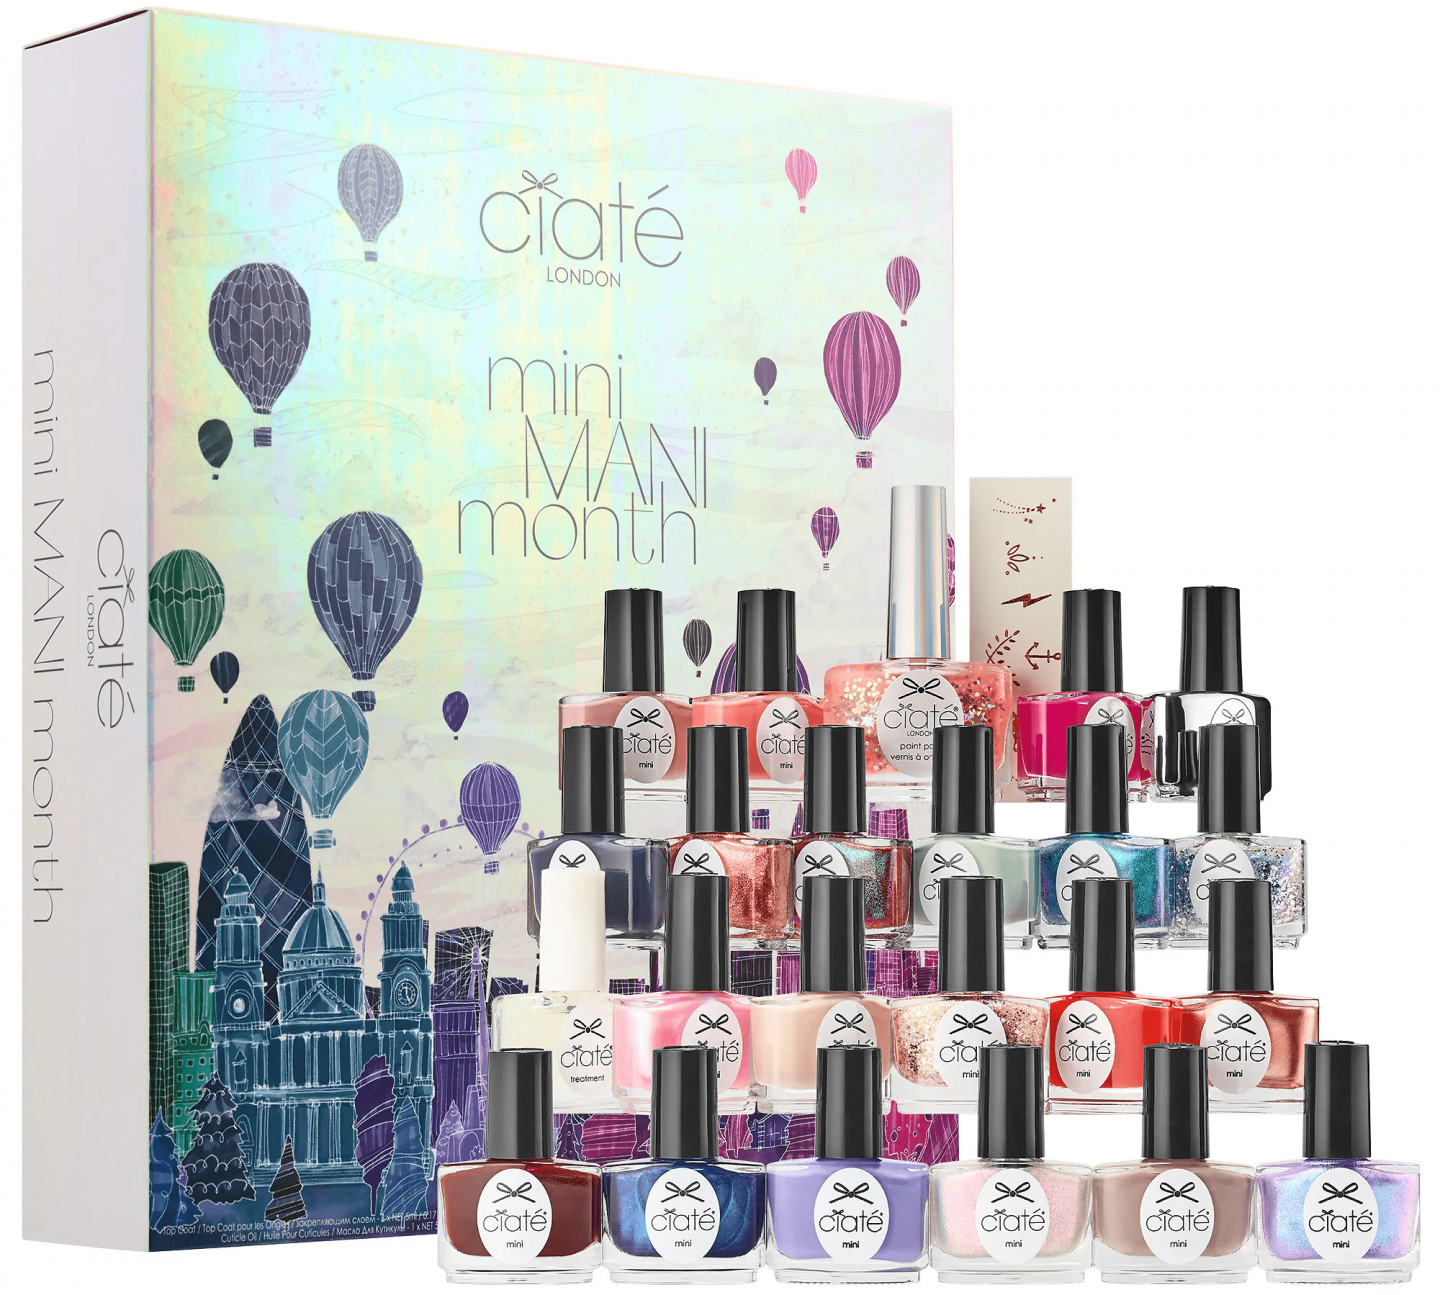 Ciate London Mini Mani Advent Calendar 2018